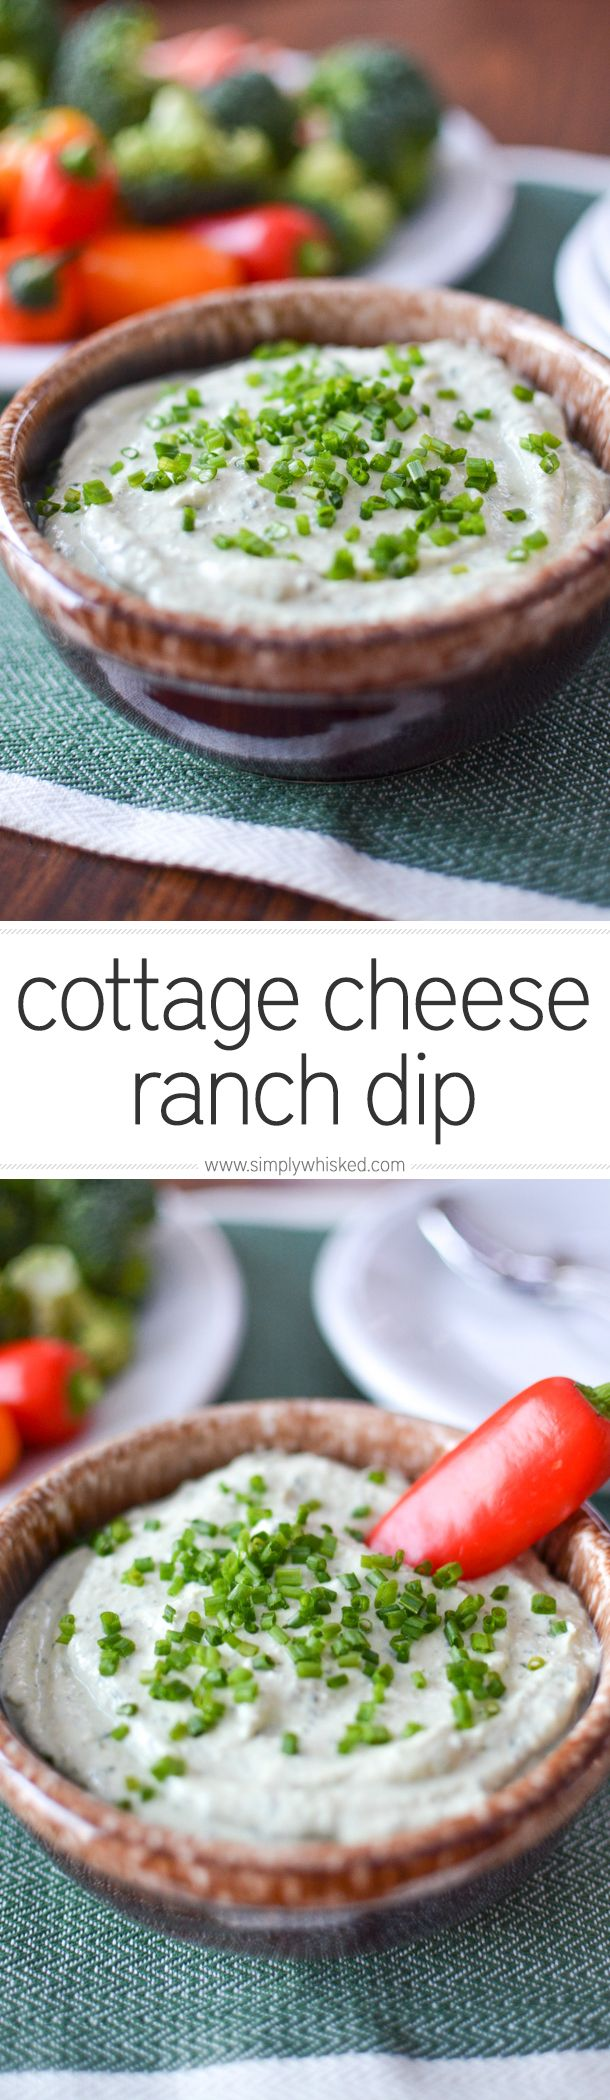 The 25+ best Cottage cheese dips ideas on Pinterest ...